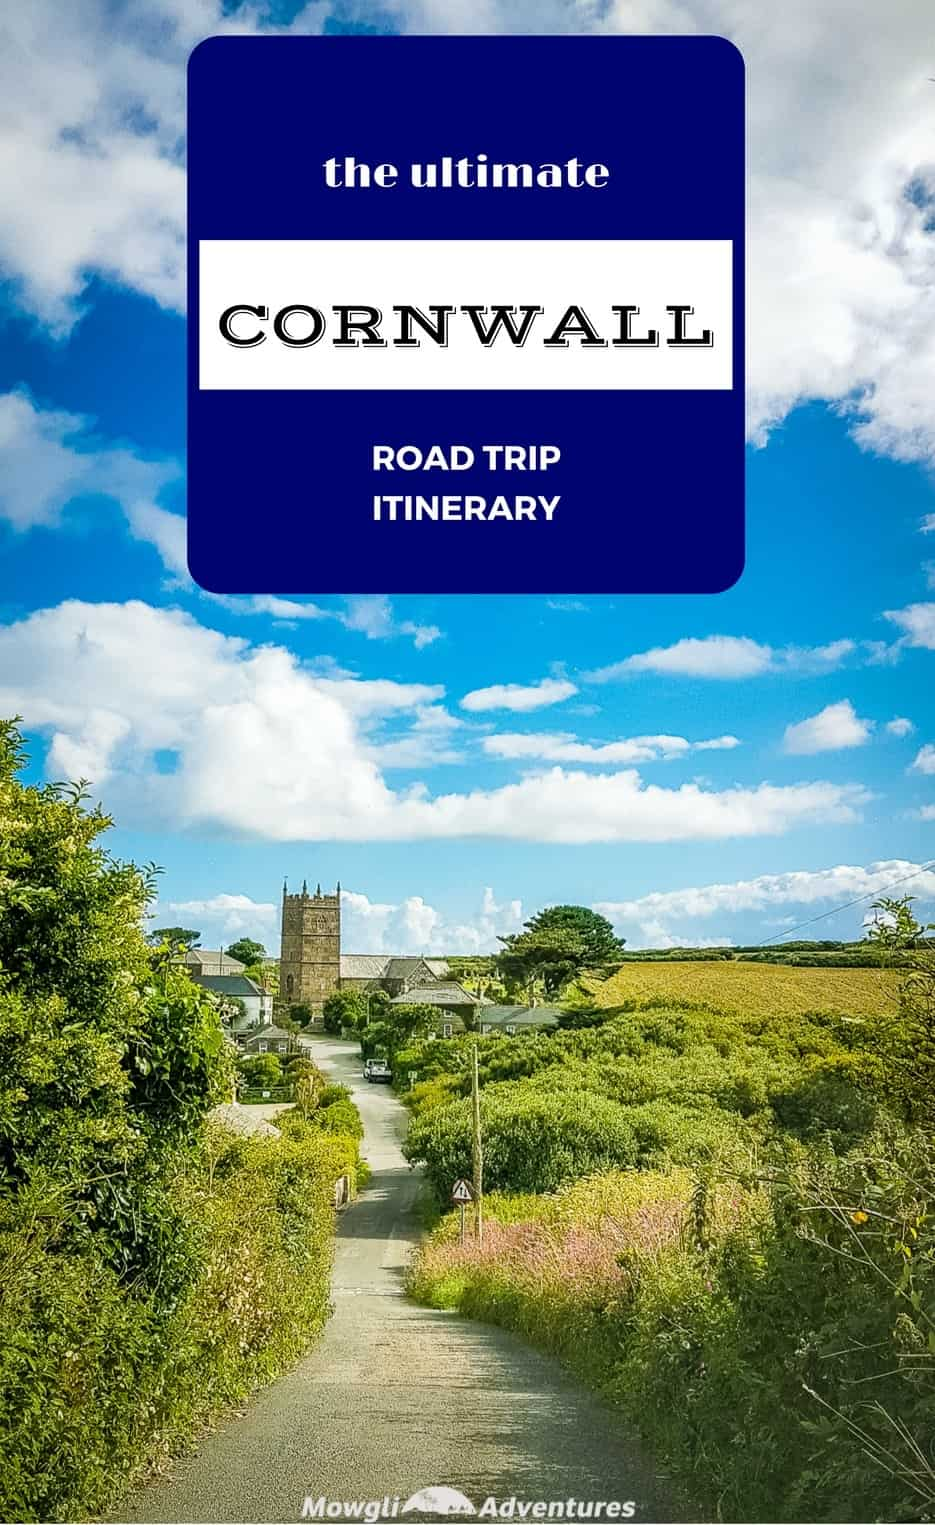 It's little wonder Cornwall is considered one of the most scenic stretches of coastline in England! With dramatic cliffs, hidden coves, lost gardens and the best ice cream ever, Cornwall is just begging to be explored. Here's the itinerary for the ultimate road trip in Cornwall taking you all around this spectacular coastline. #Cornwall #RoadTrip #Travel #England Get the full route here: http://mowgli-adventures.com/ultimate-road-trip-in-cornwall/